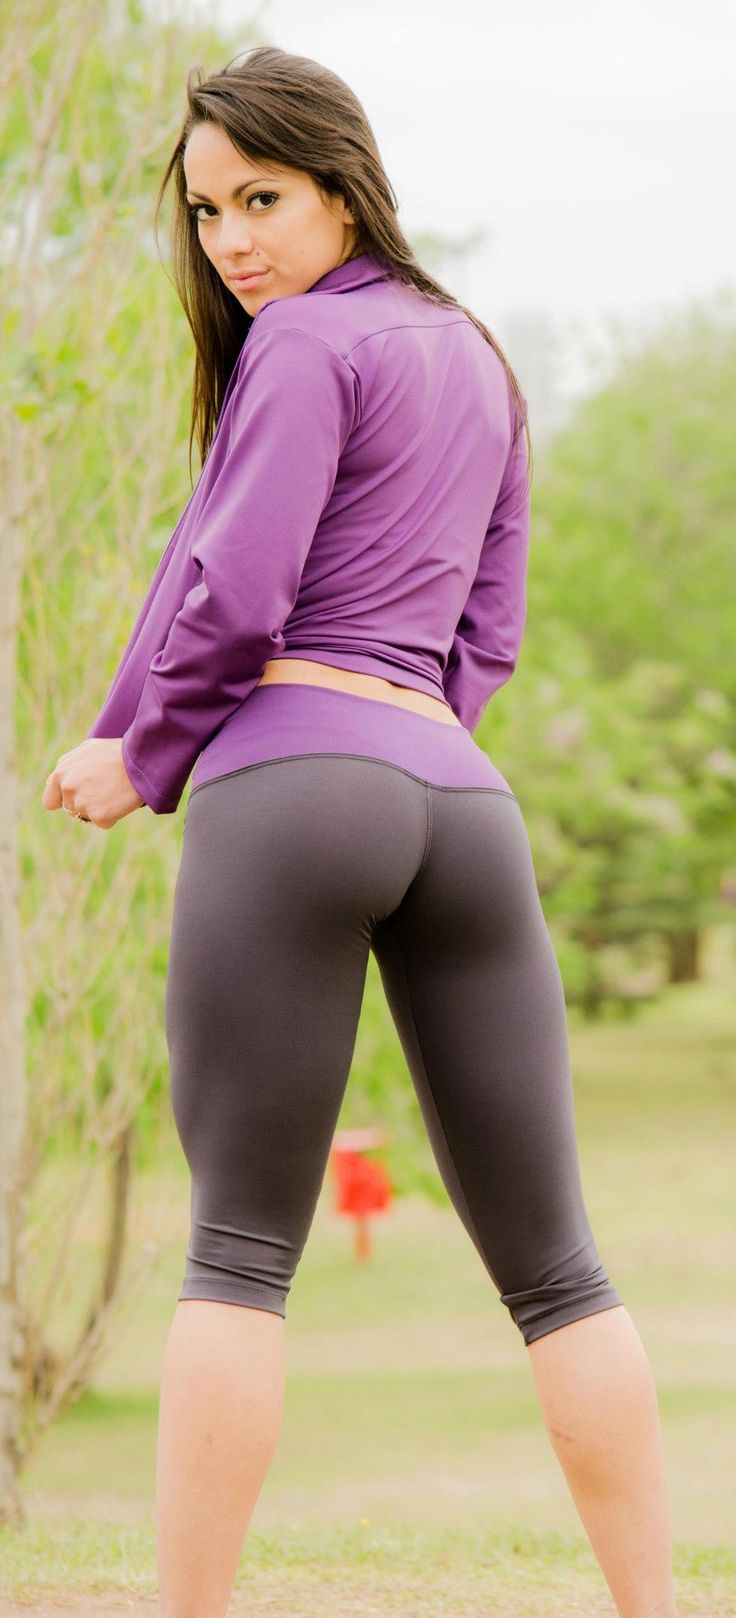 Hot chicks in yoga pants pussy